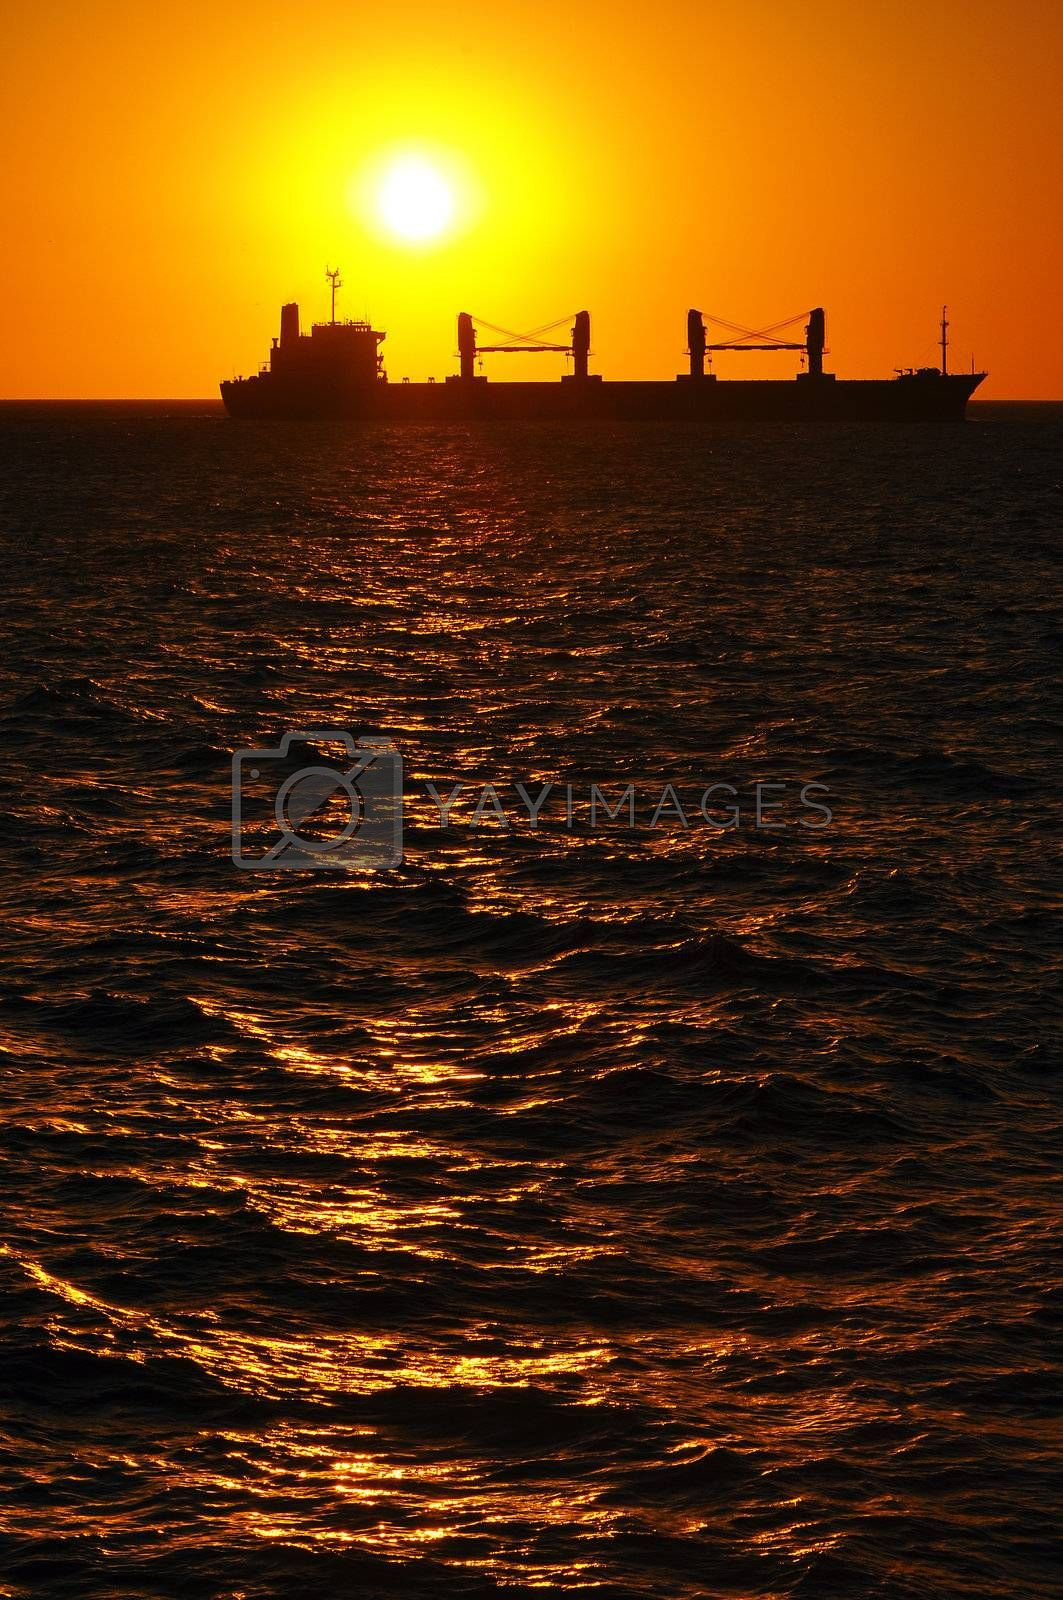 A silhouette of a boat at sunset in Montevideo, Uruguay.